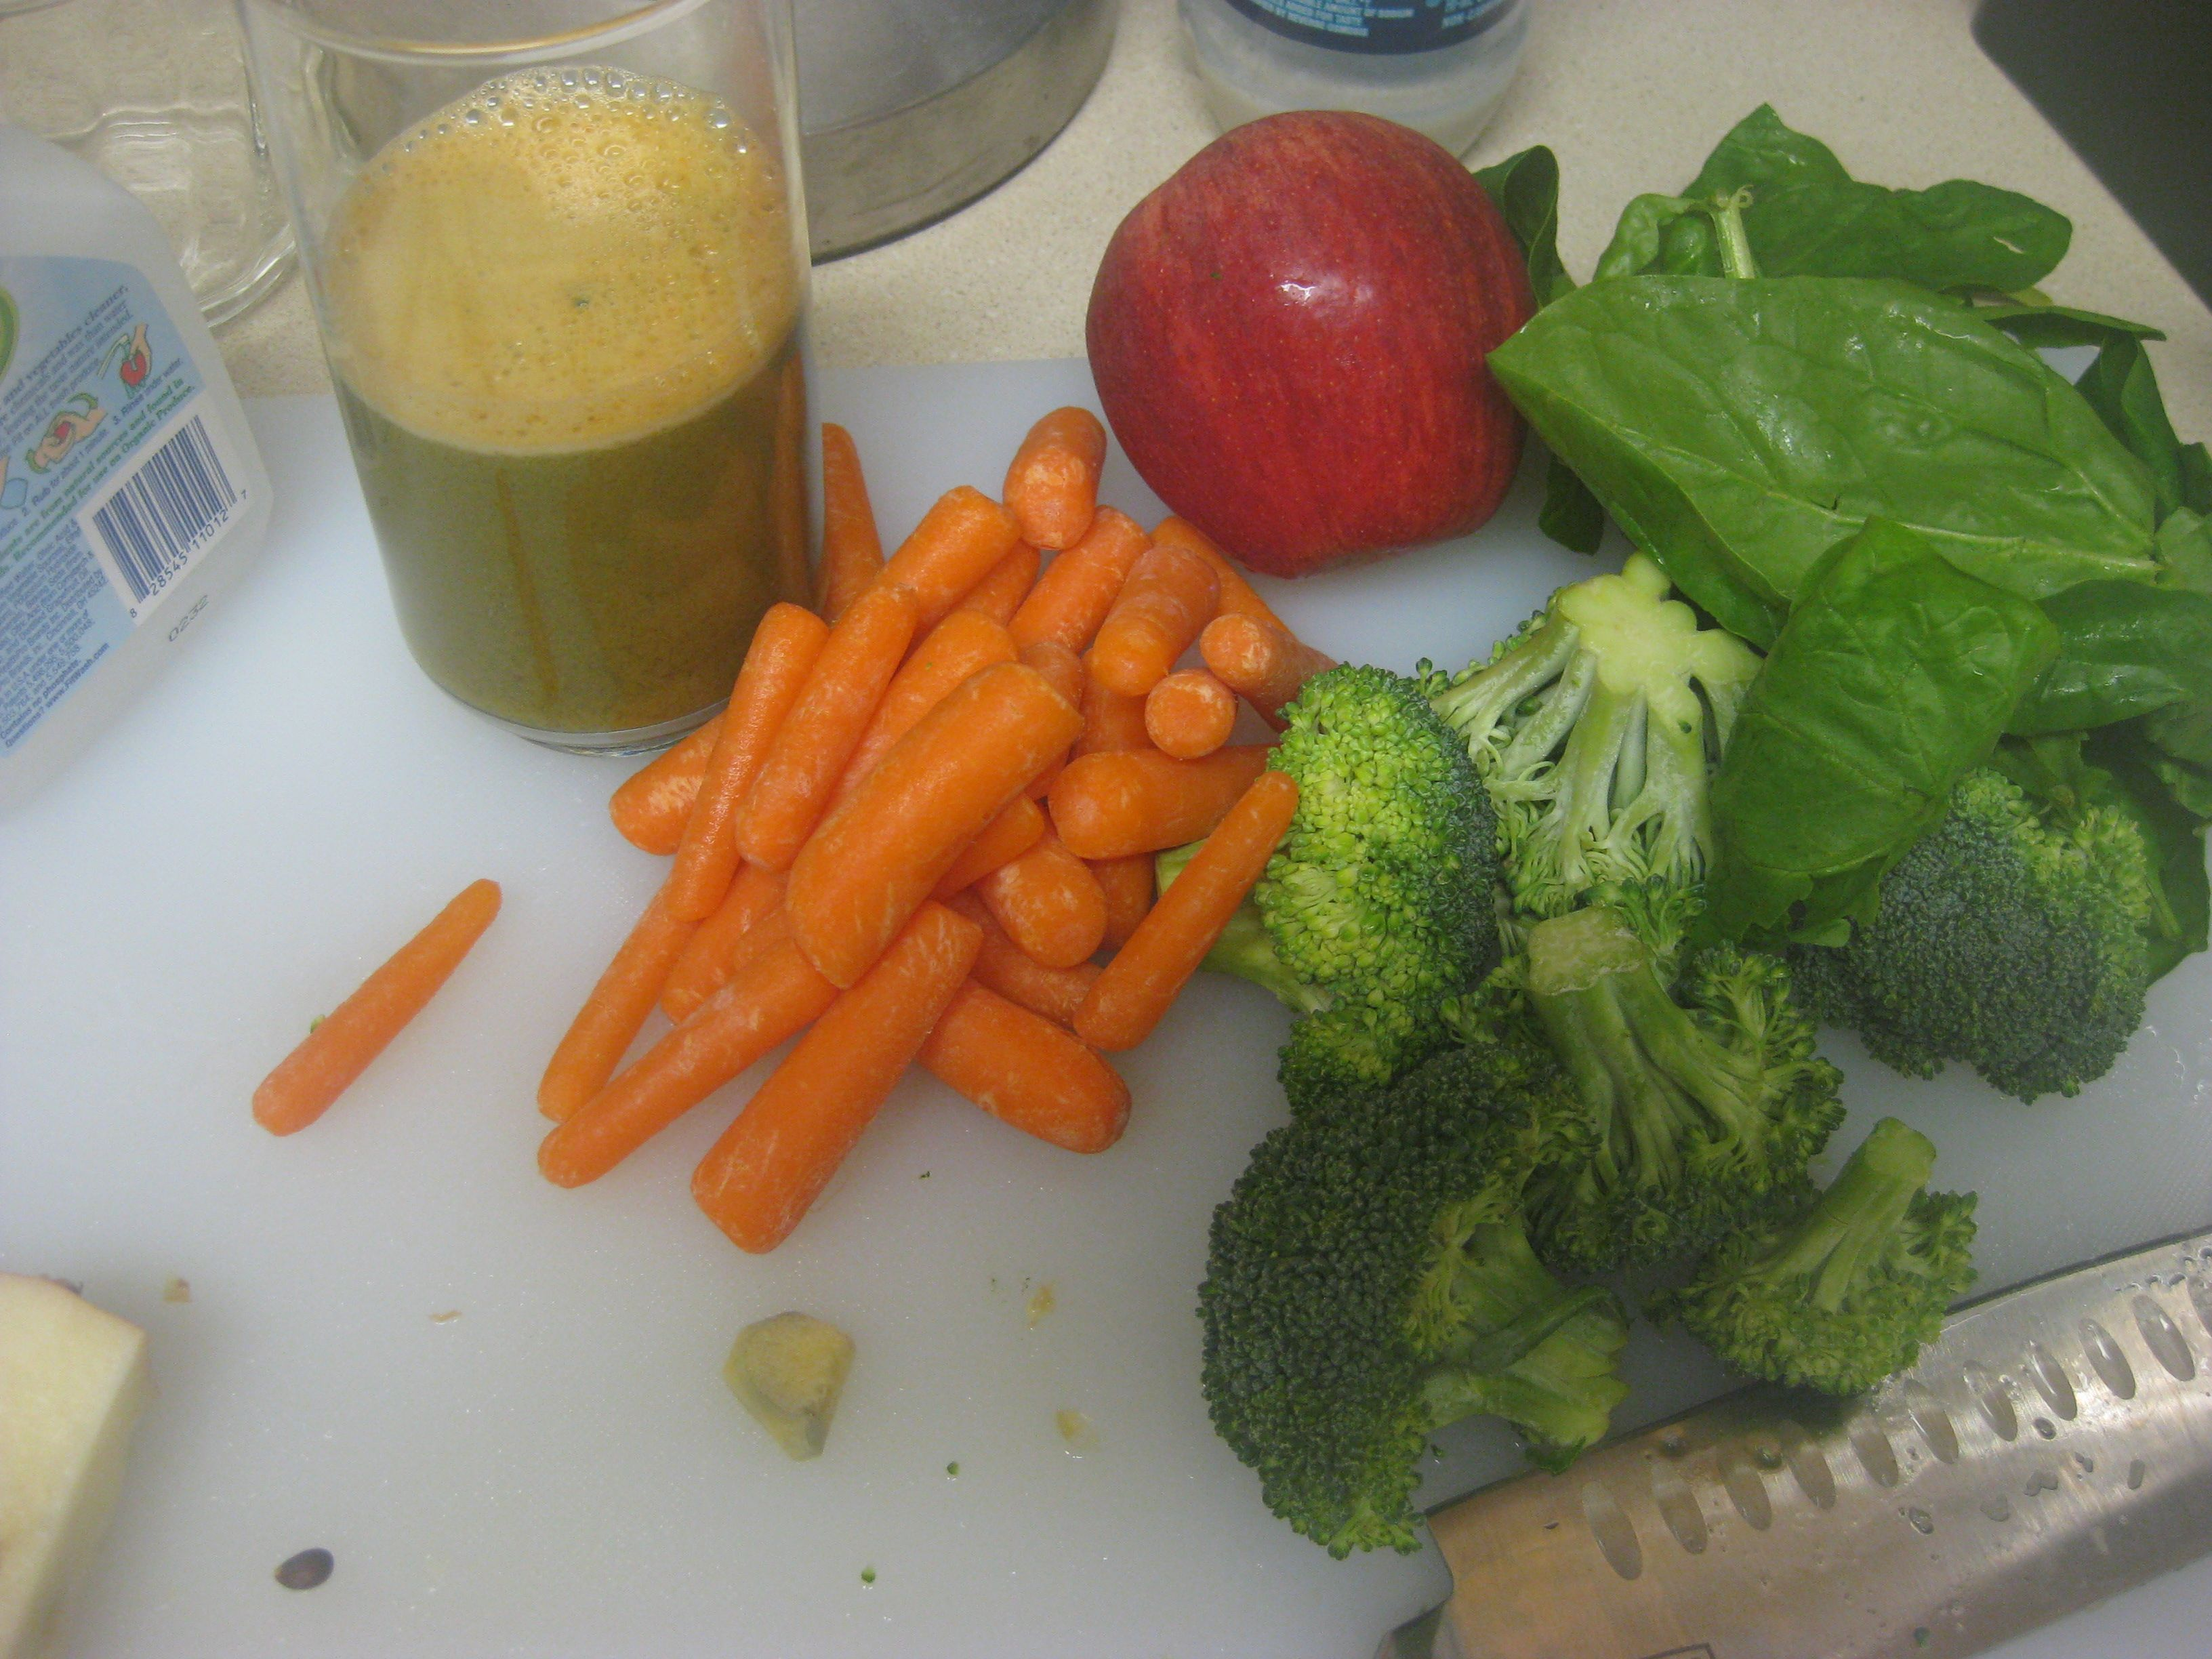 1 Apple 2 Handfuls Baby Carrots Spinach Broccoli